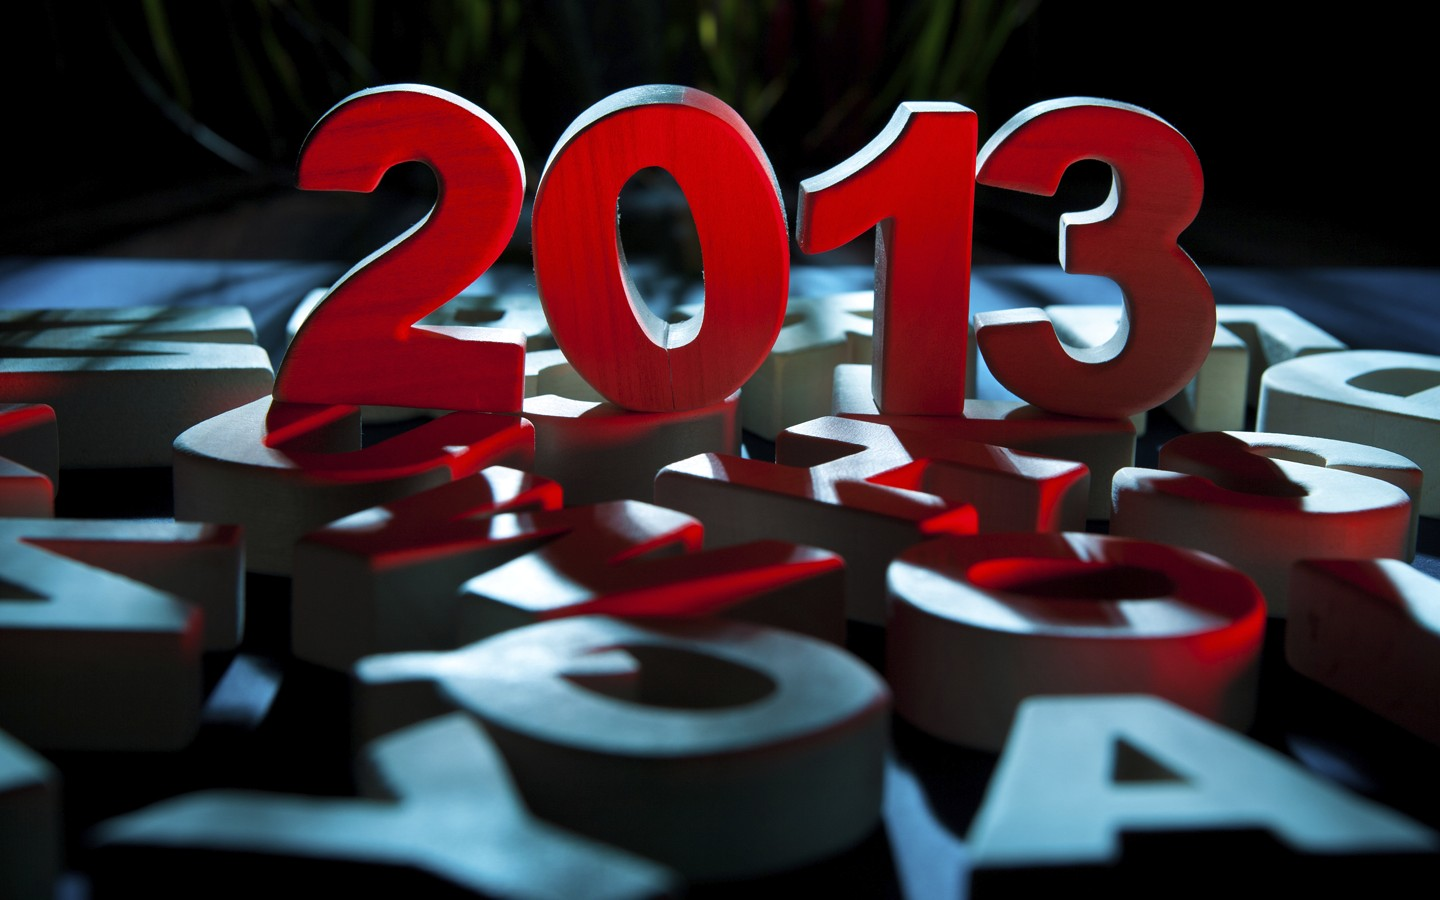 New Year Digital Background 32147